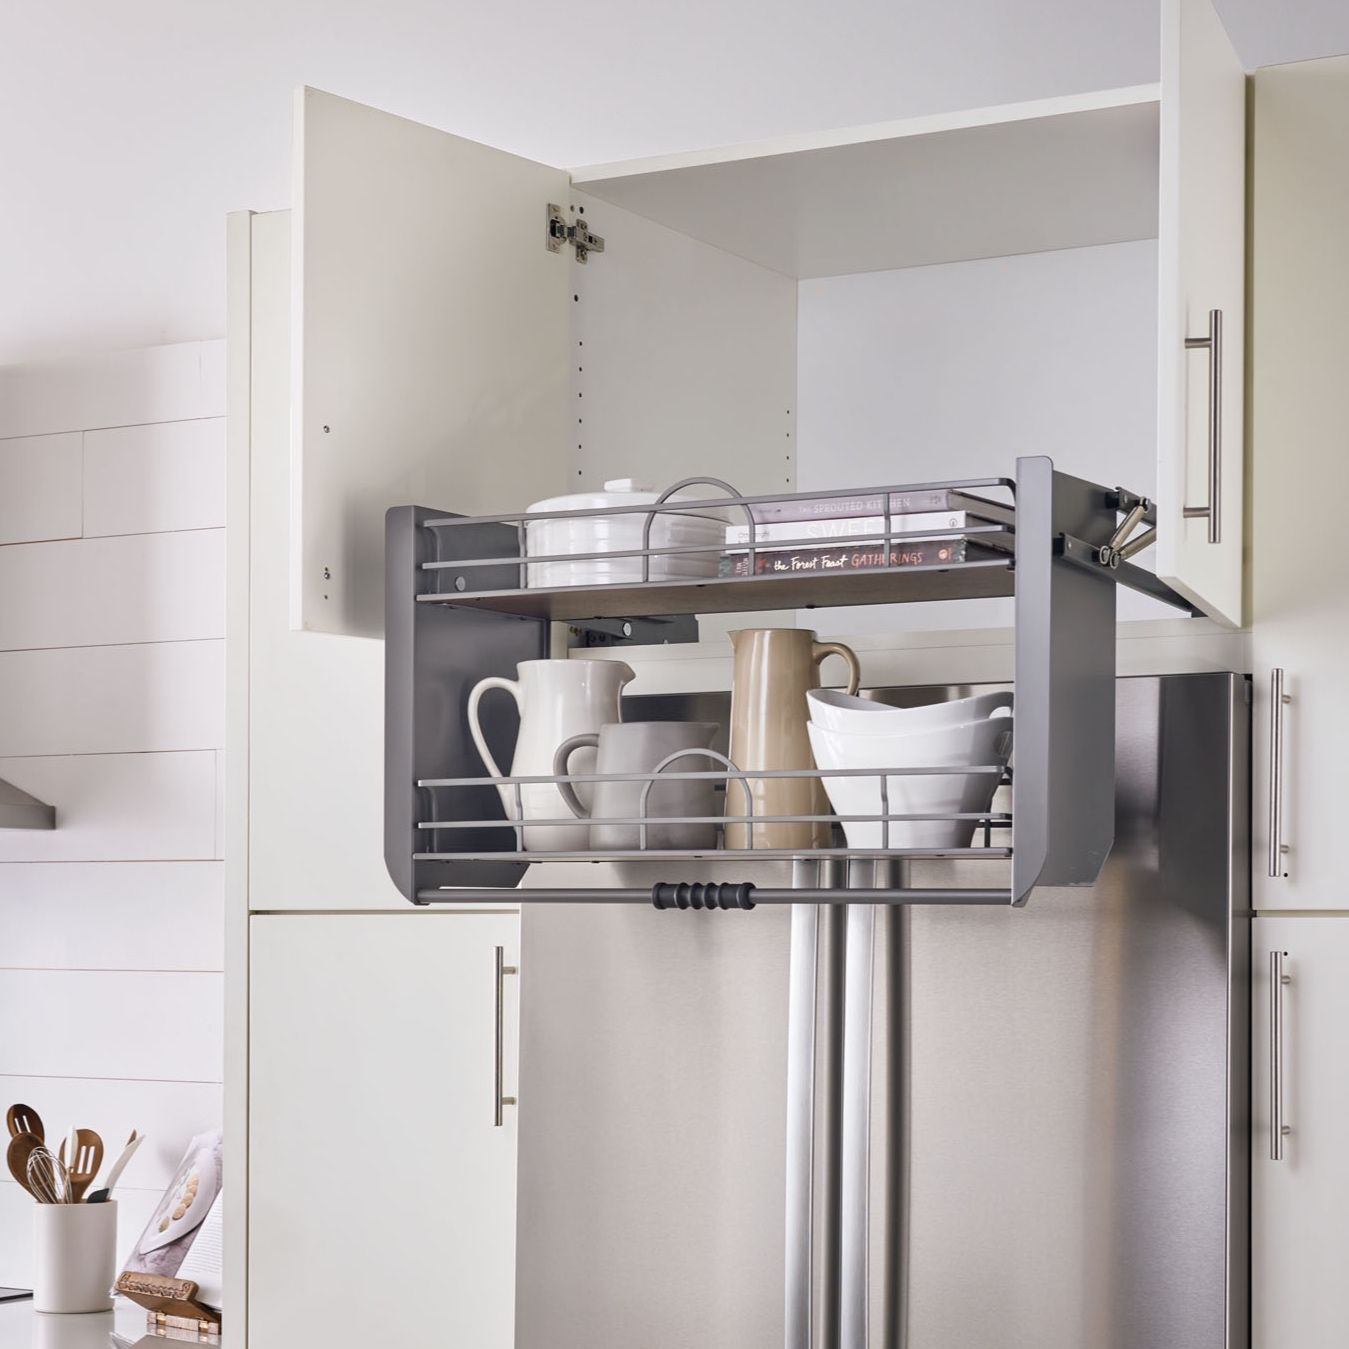 15 Kitchen Cabinet Organizers That Will Change Your Life Pull Down Shelf Rev A Shelf Cabinets Organization